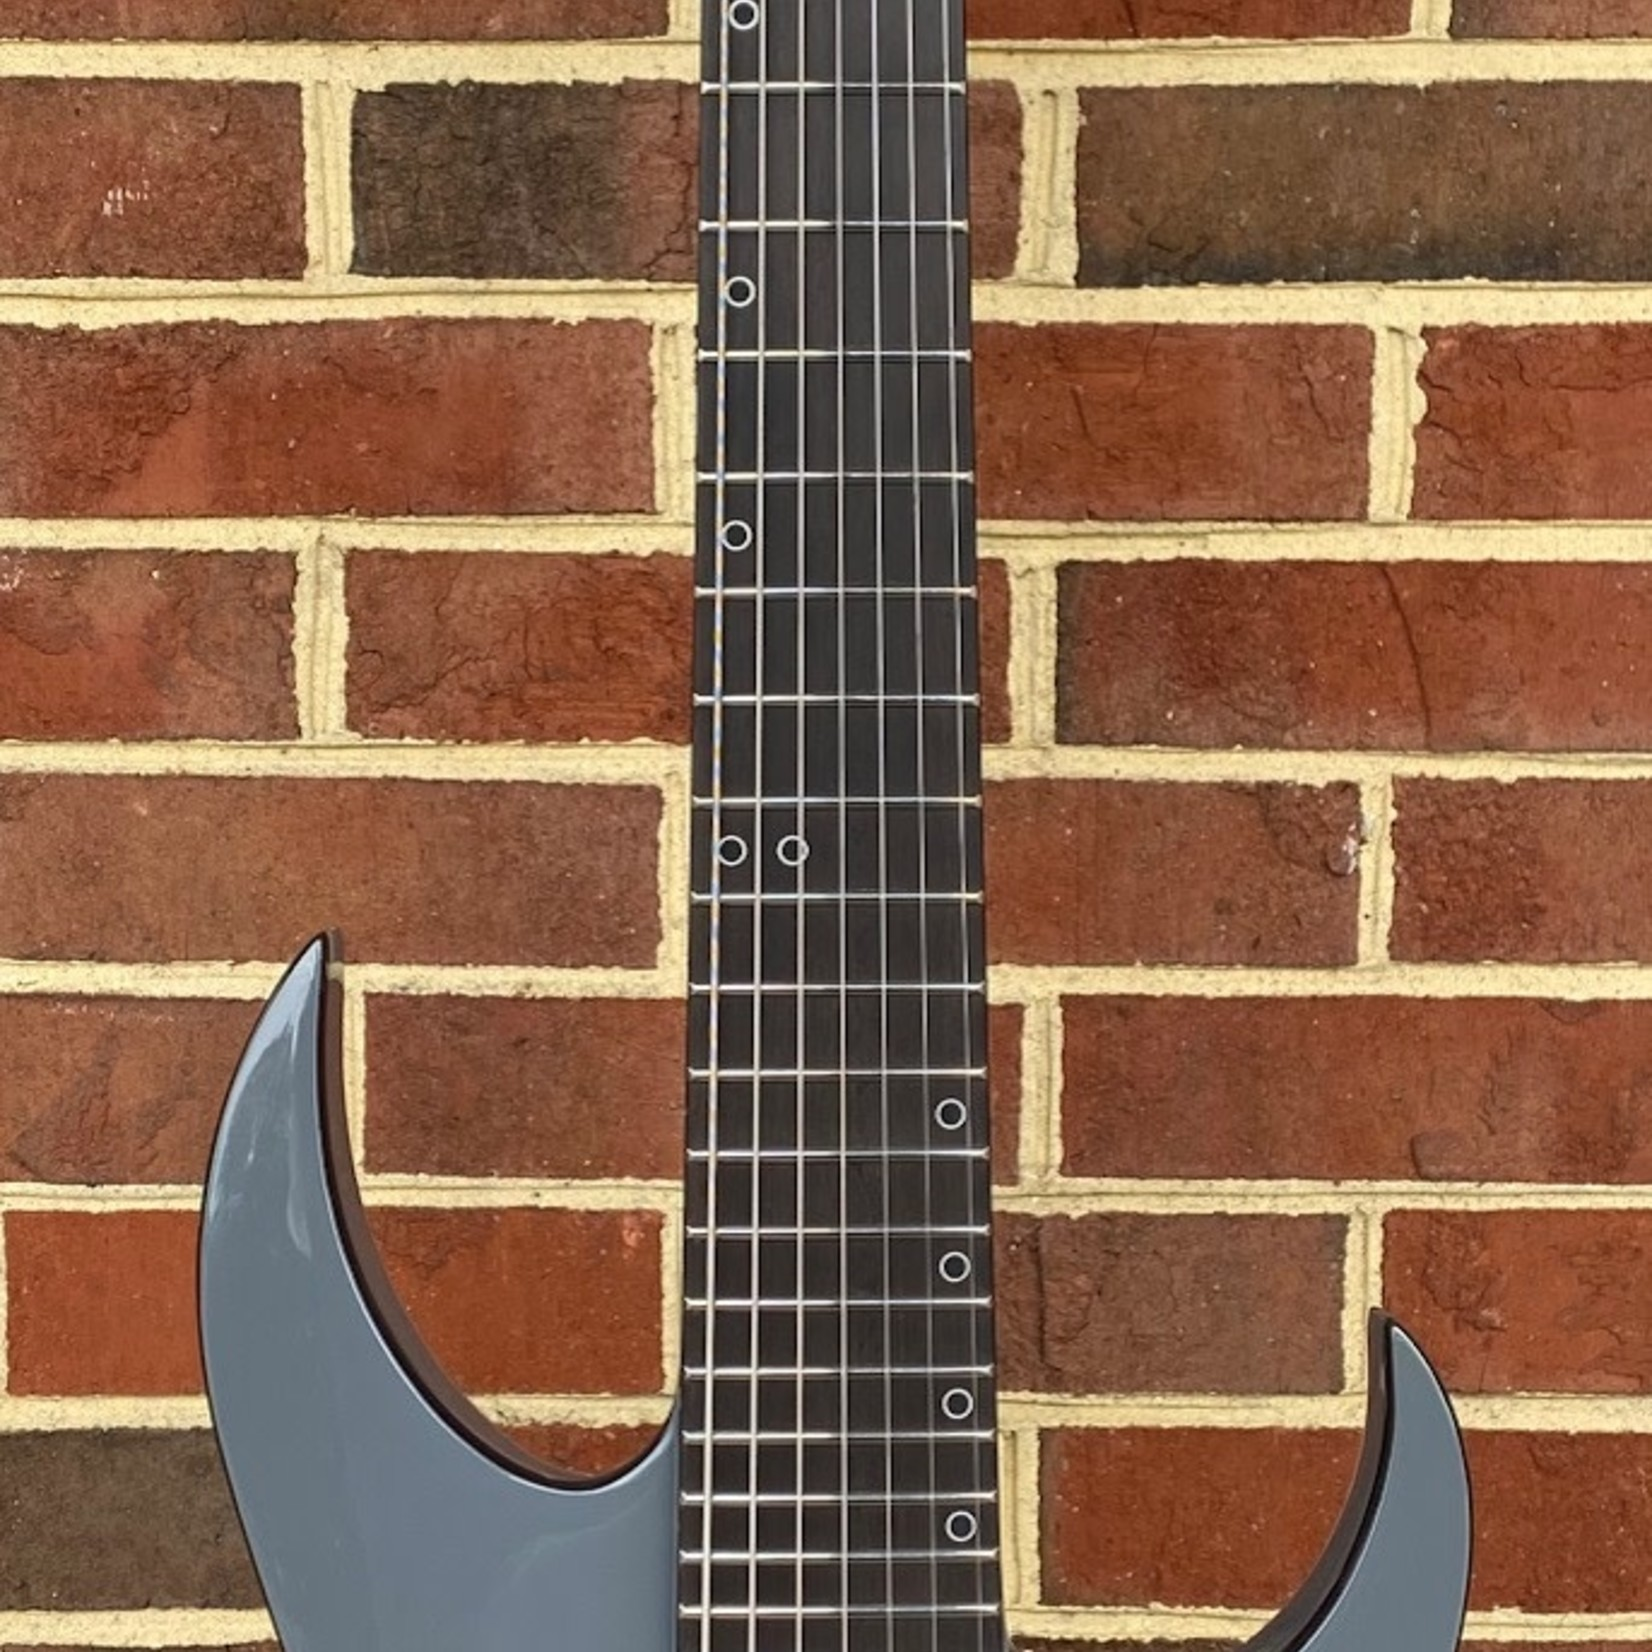 Schecter Guitar Research Schecter Keith Merrow MK-III, Telesto Grey, Fishman Fluence Pickups, Ebony Fretboard, Locking Tuners, Luminlay Side Markers